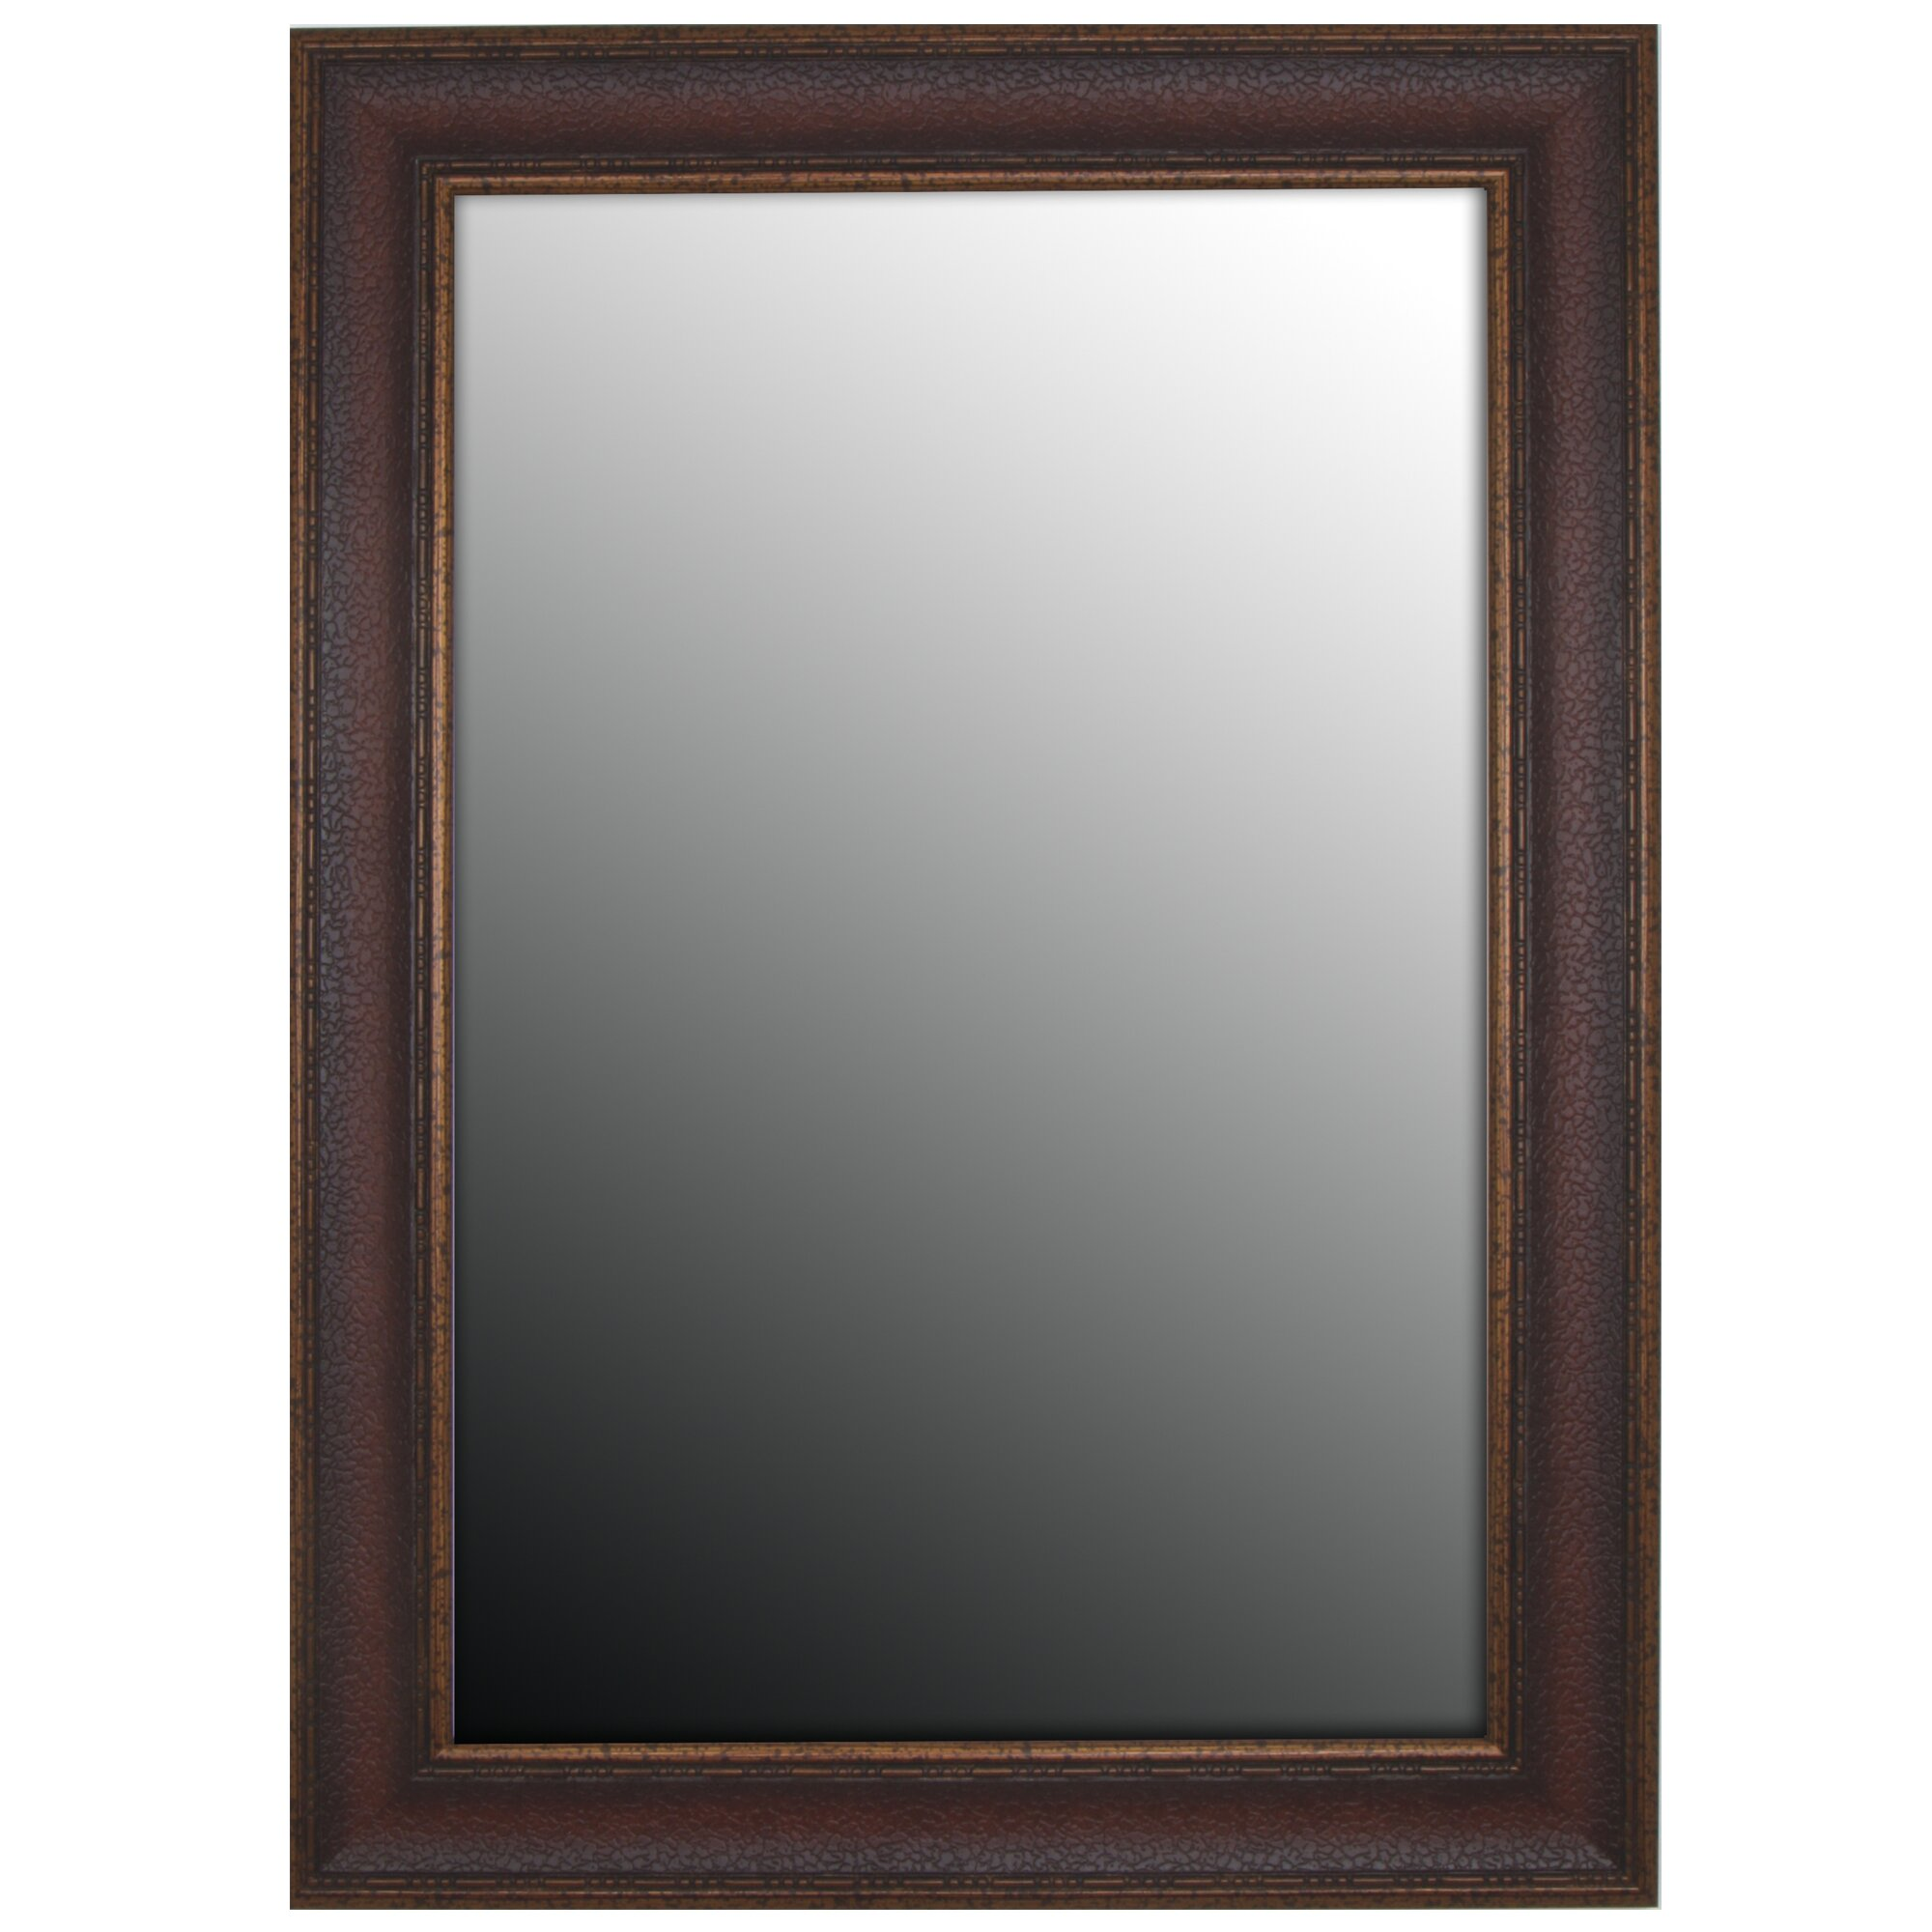 Second look mirrors copper embossed bronze wall mirror for Looking for wall mirrors